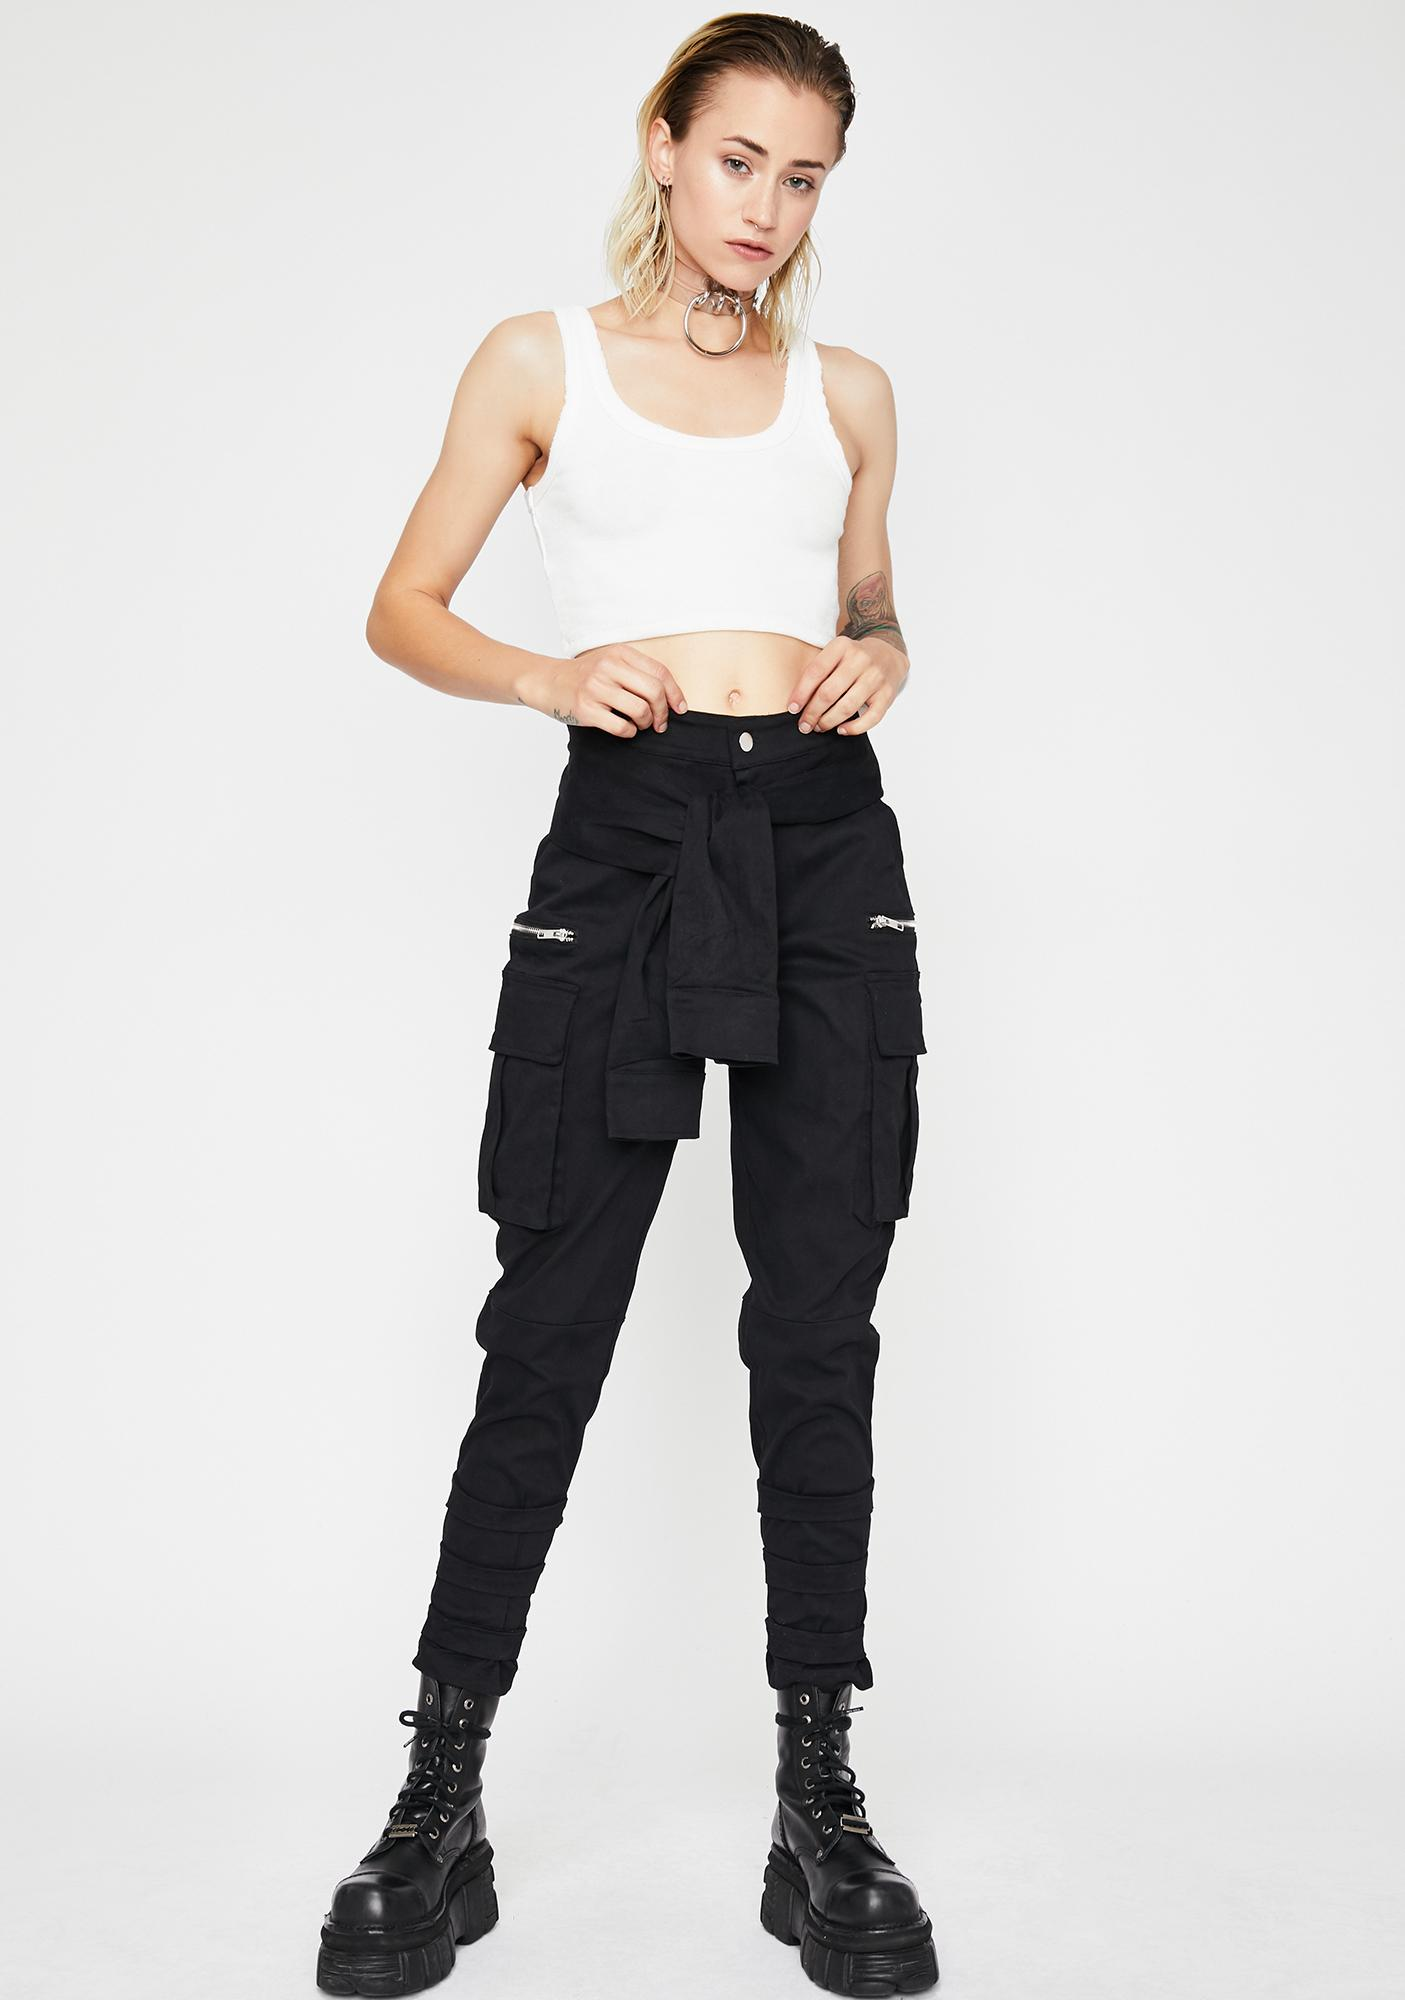 Punch Line Cargo Pants